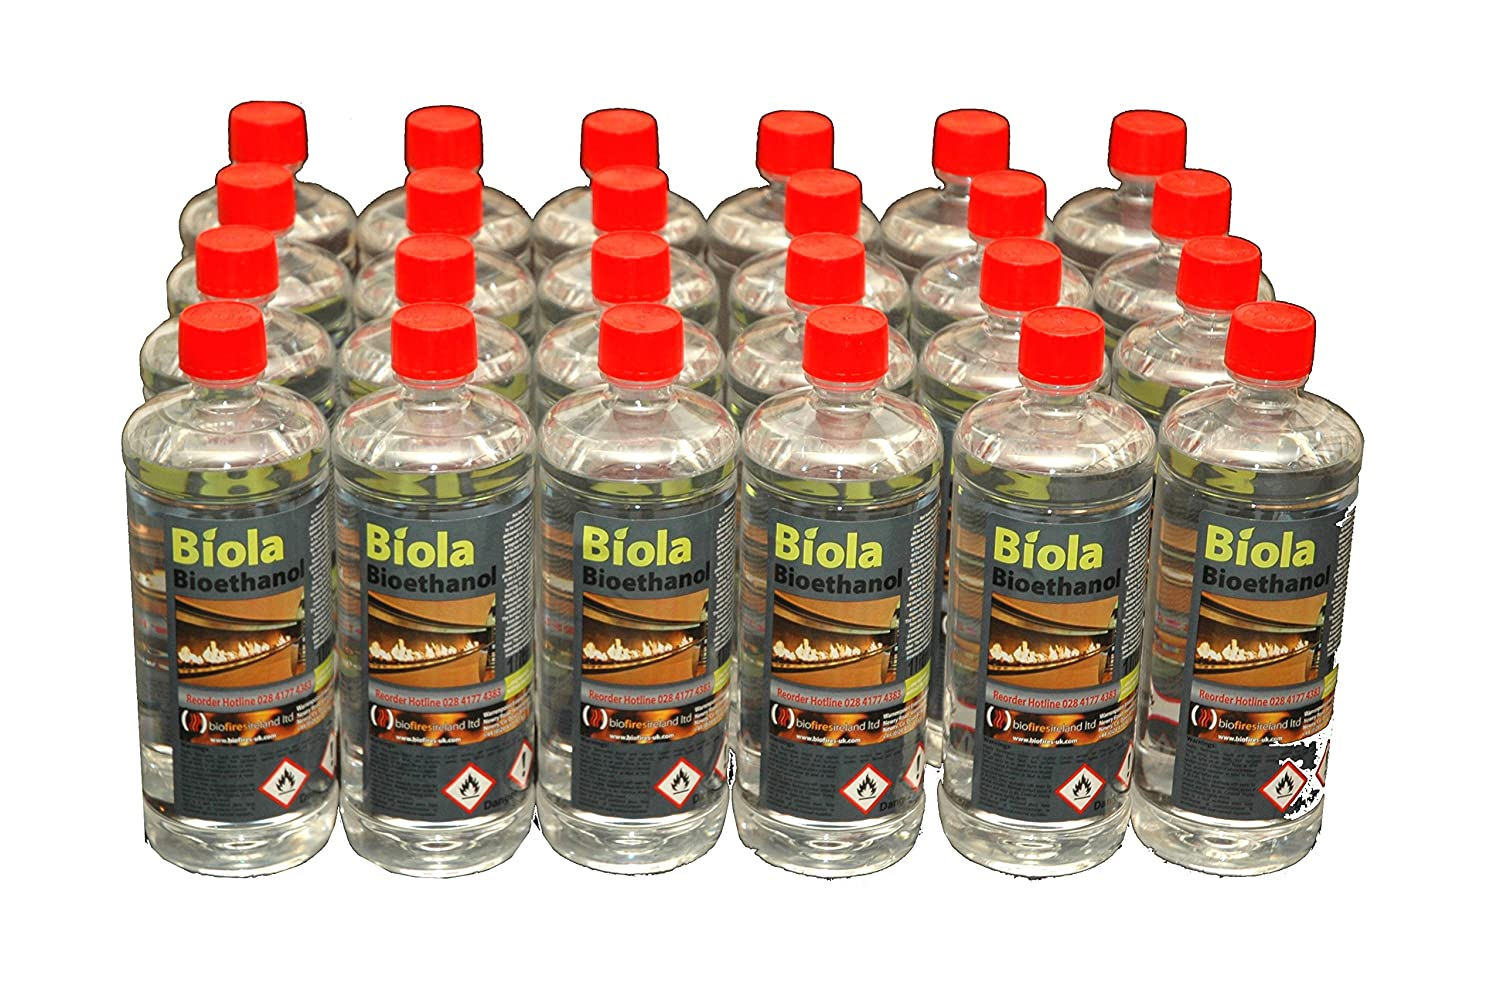 24l premium bioethanol fuel free delivery uk u0026 ireland for use in